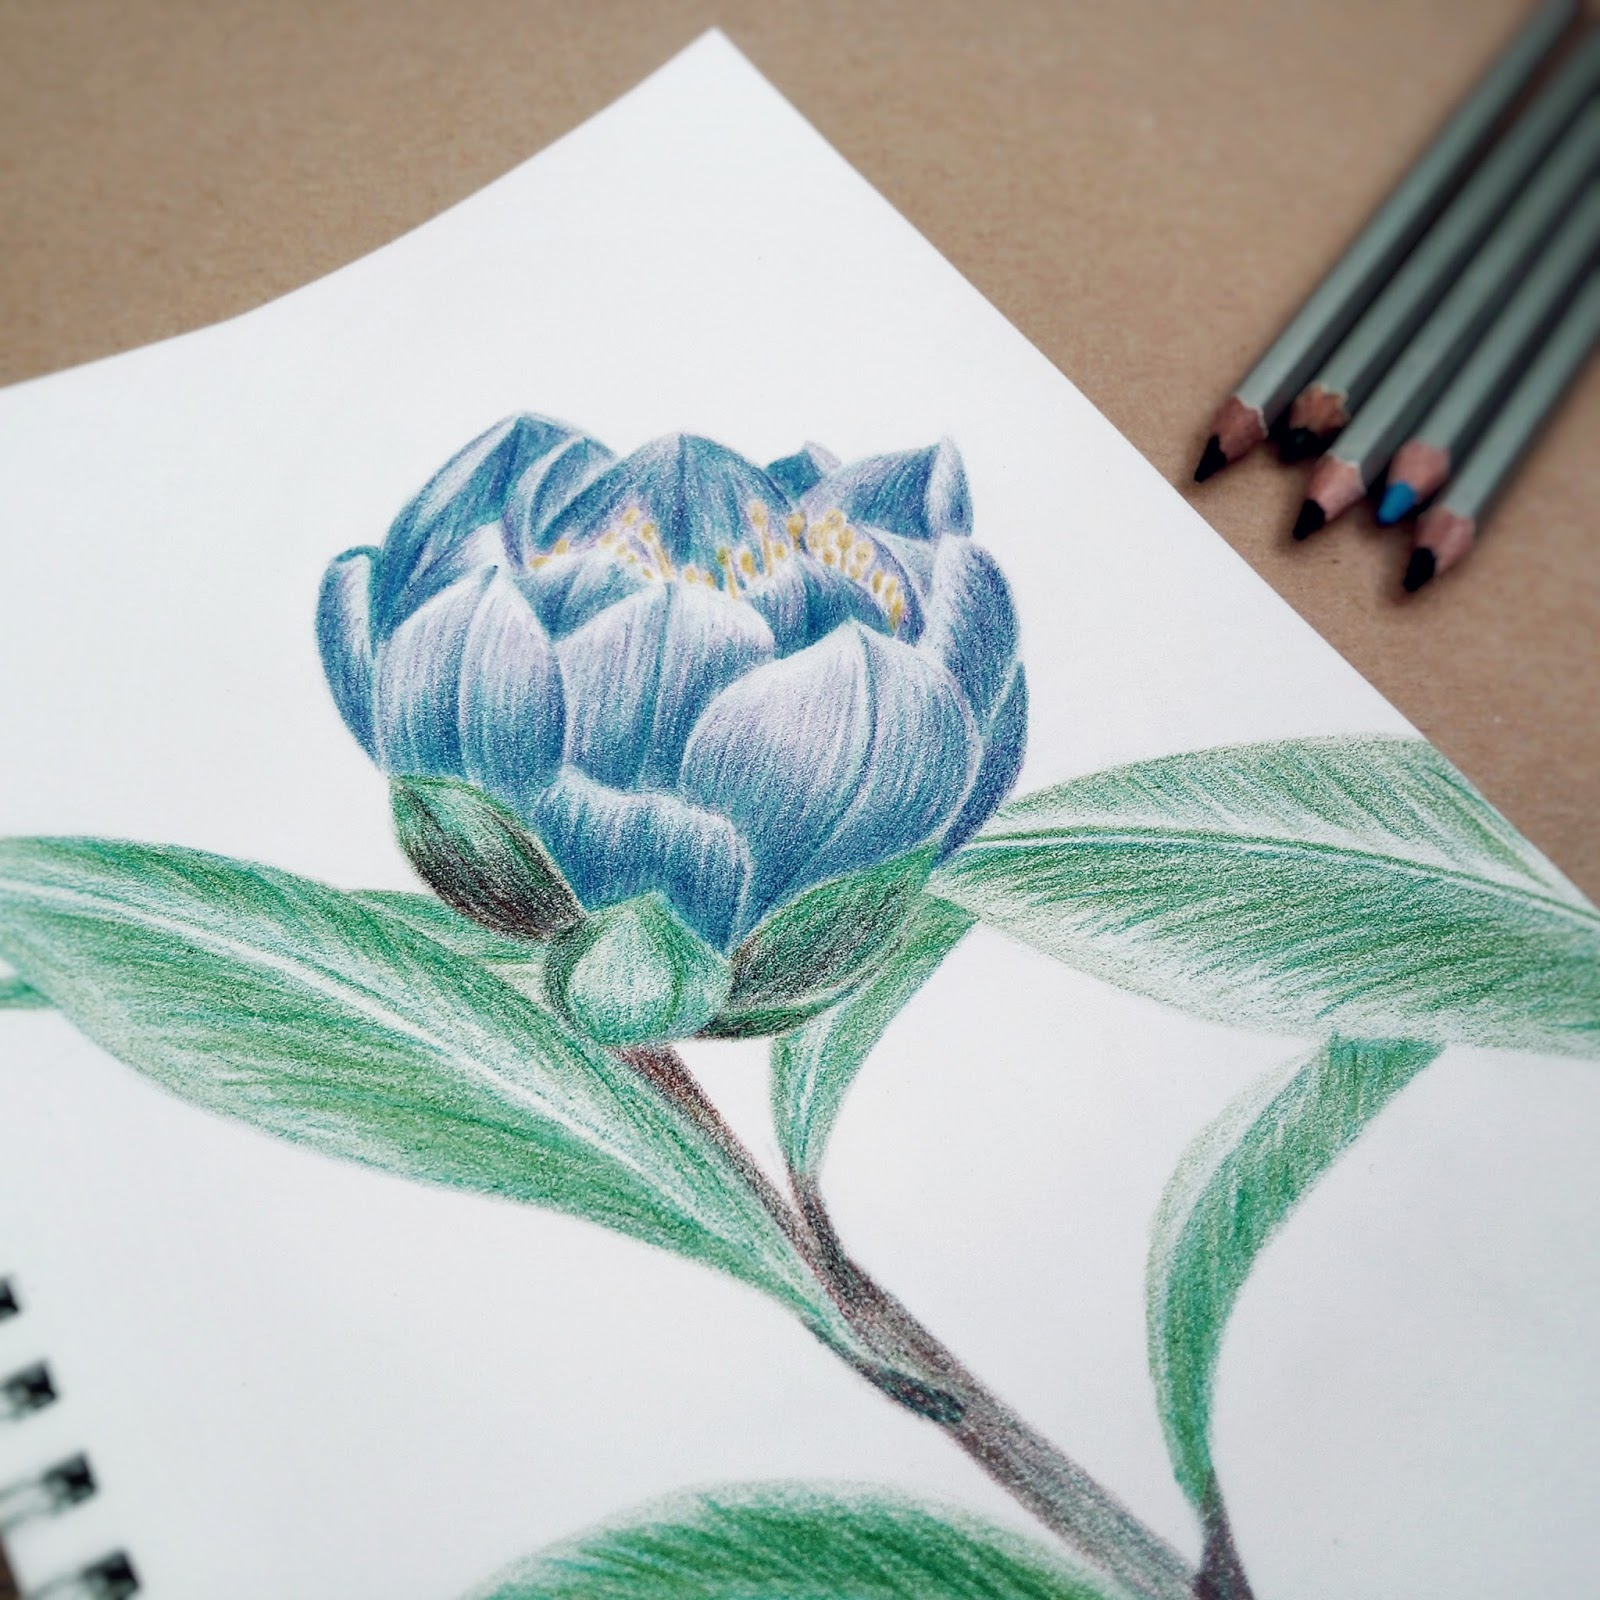 Drawing of camellia flower by Natalia Kolodiazha